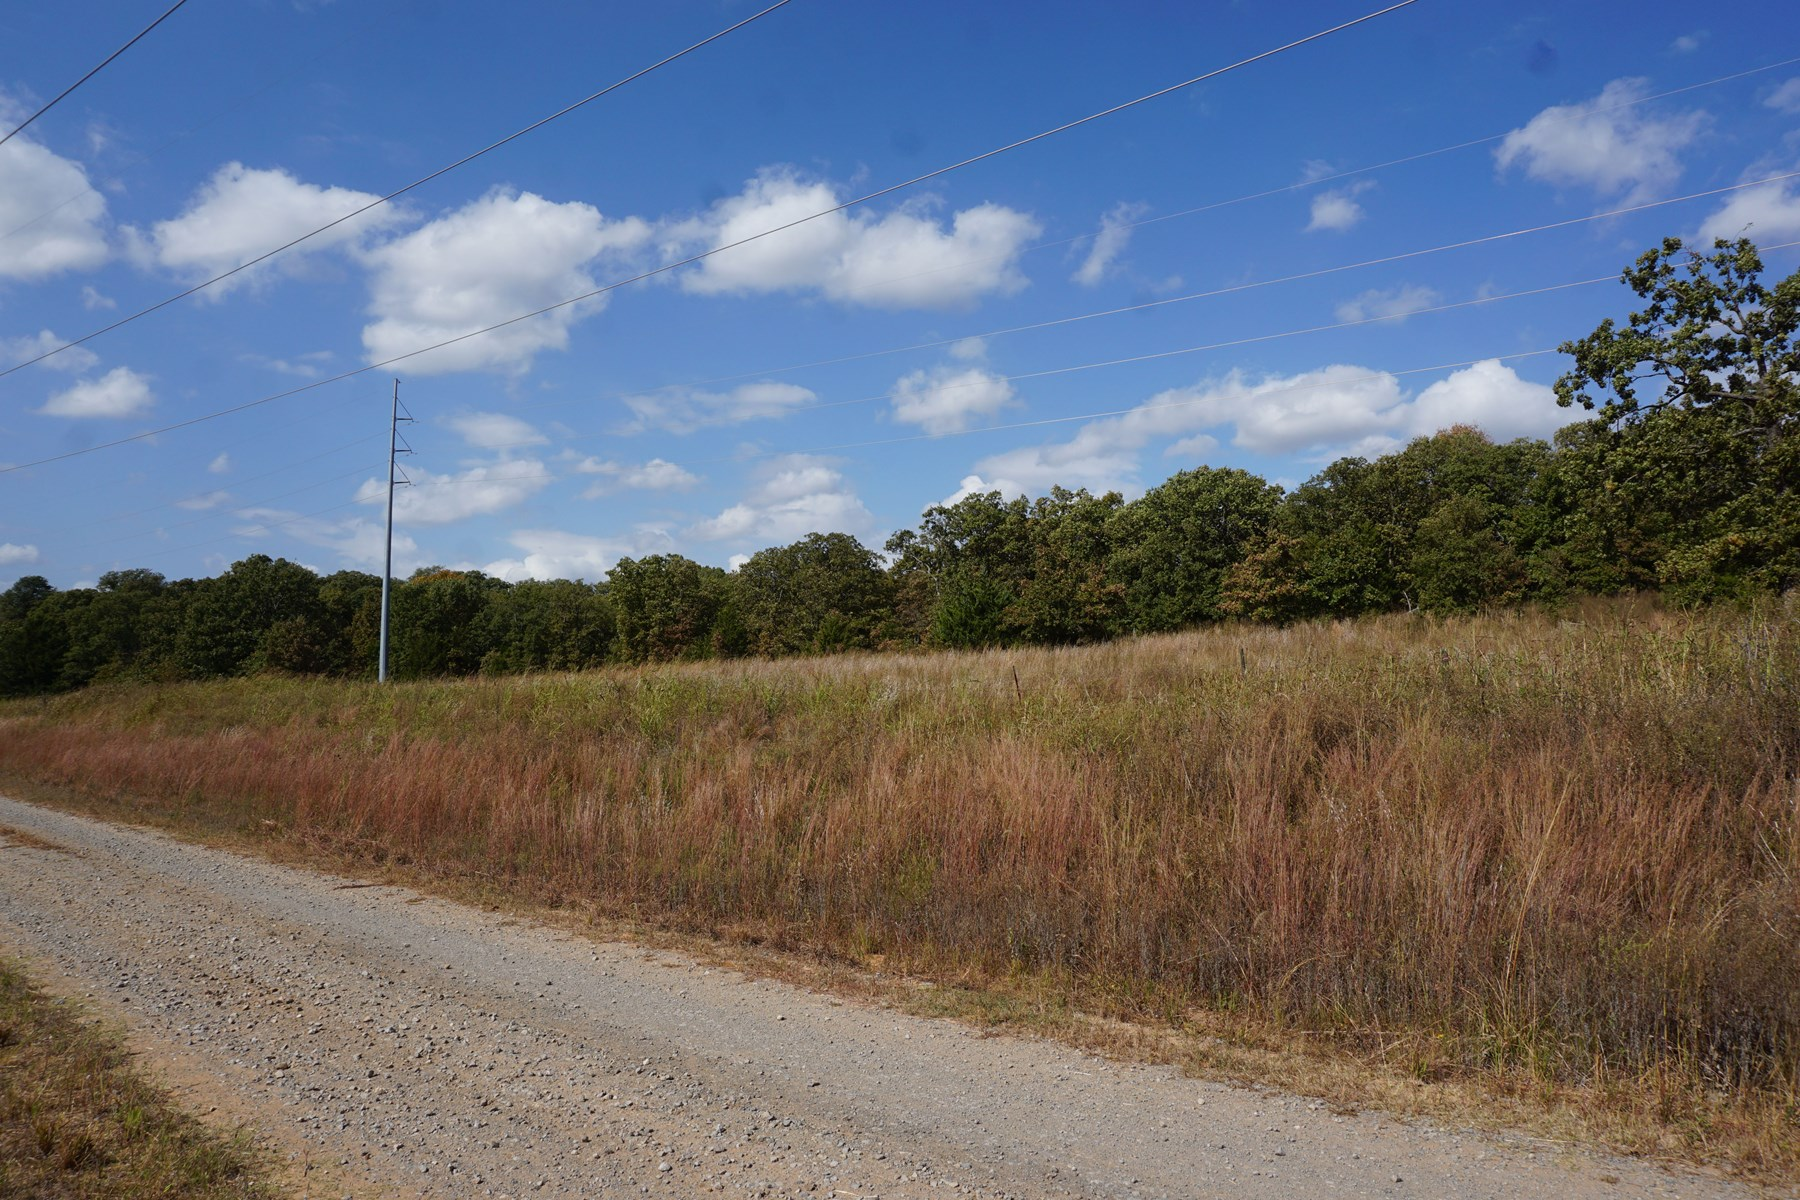 No Reserve Land Auction, 72 Acres +/-, Nov 22 @ 1:30